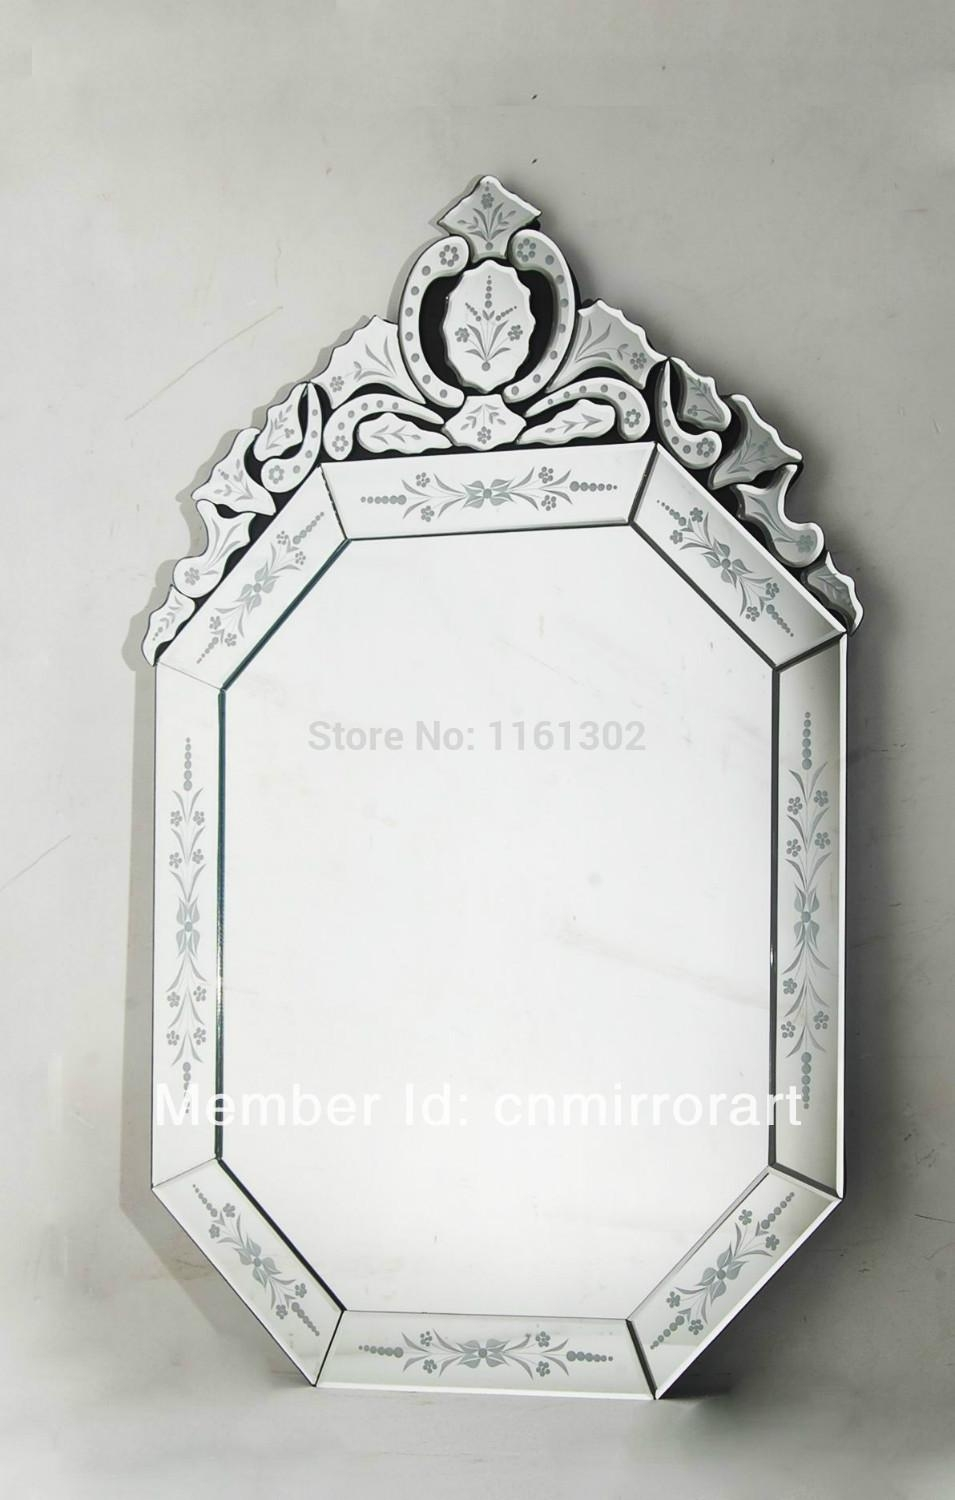 20 venetian oval mirror mirror ideas online get cheap venetian wall mirror aliexpress alibaba group within venetian oval mirror image amipublicfo Images